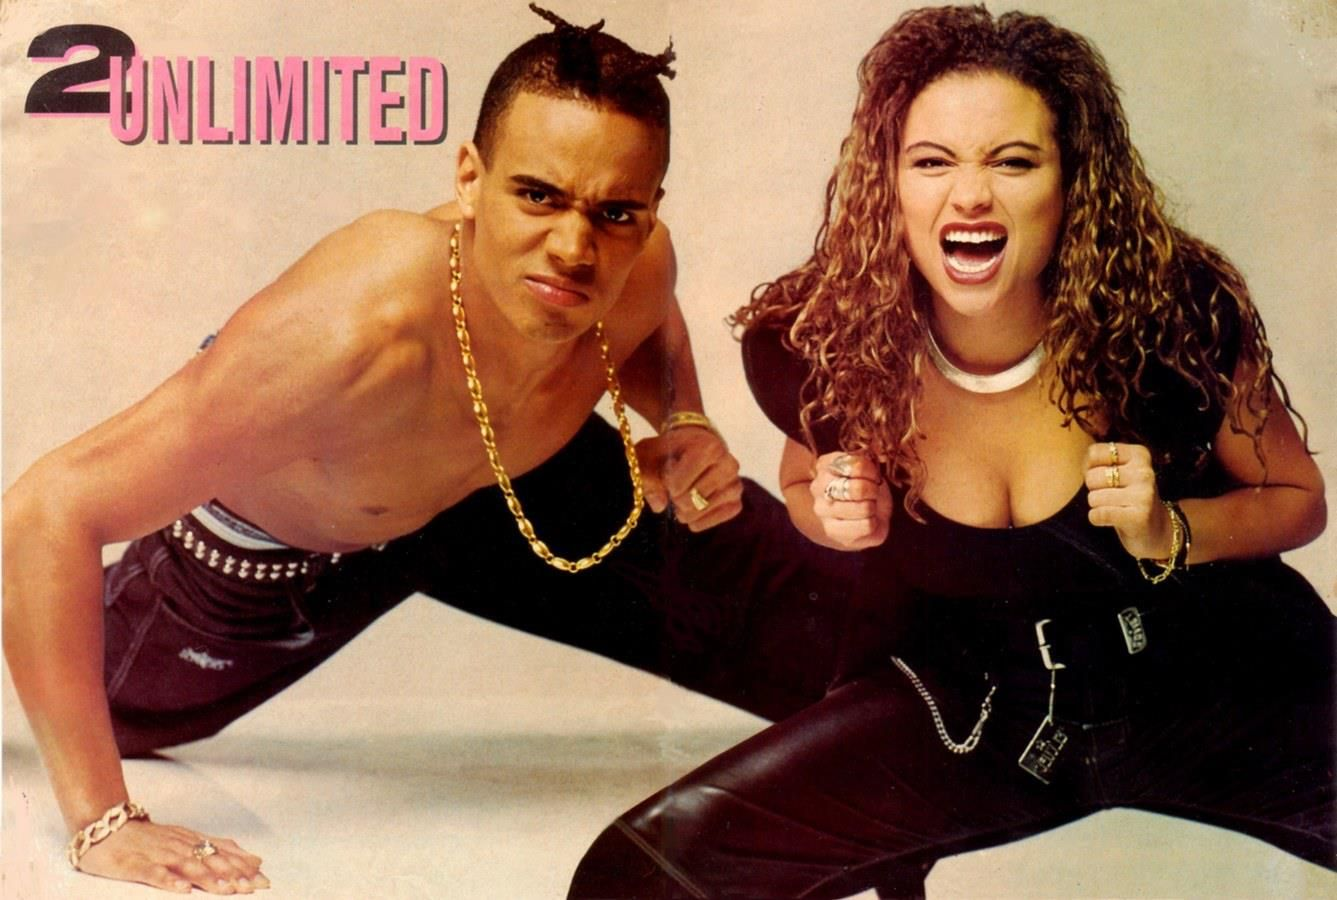 2 Unlimited MP3 descargar musica GRATIS